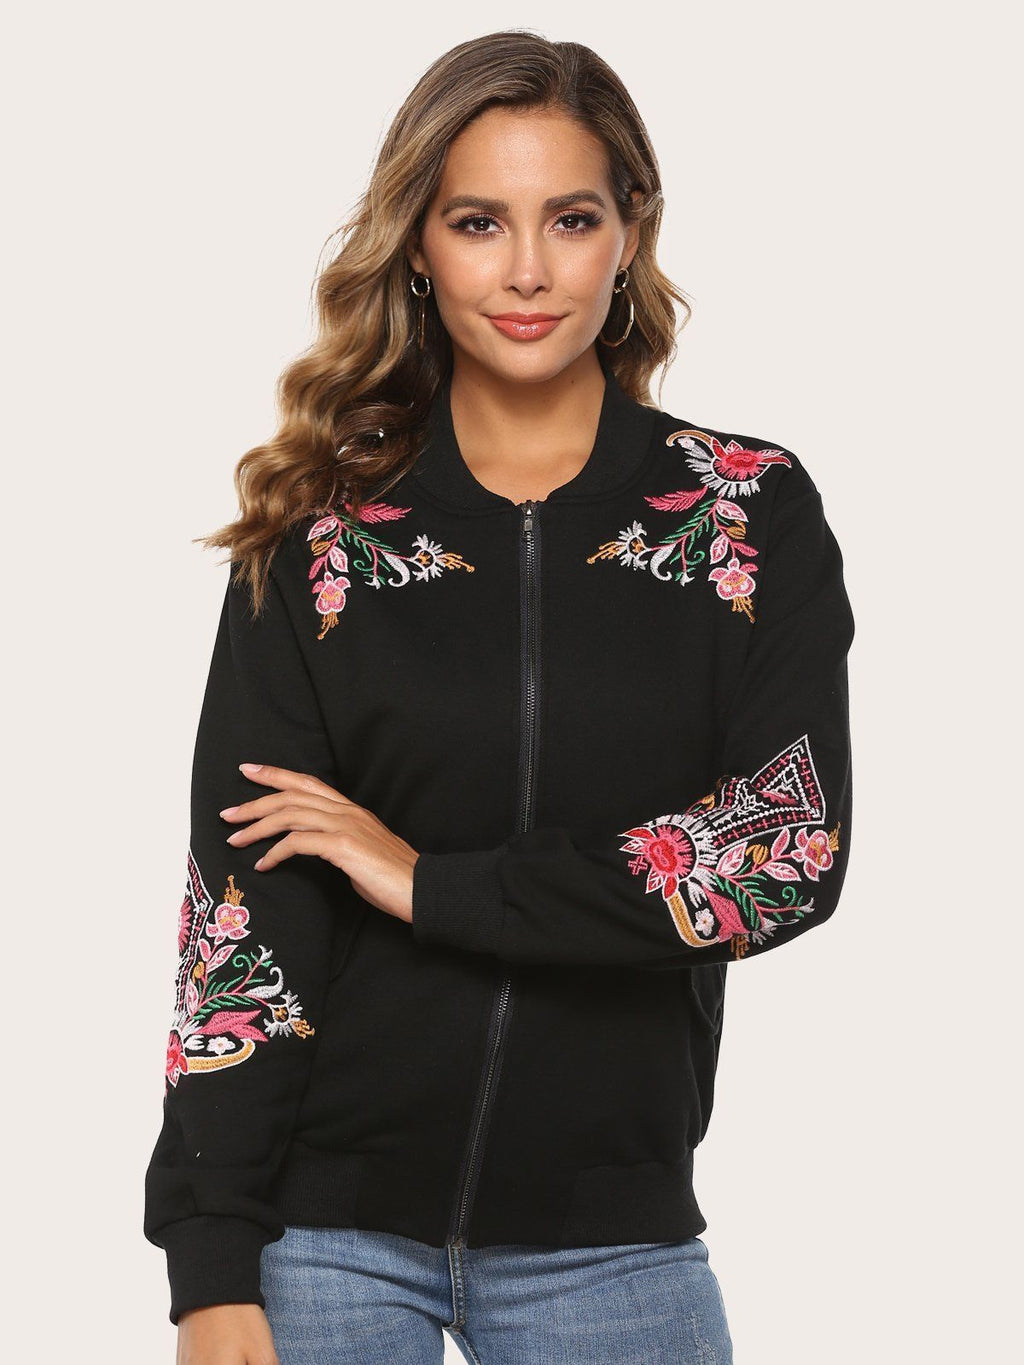 Floral Bohemian Embroidered Long Sleeve Zip Jackets Best Gifts for the Season & Christmas - LuckinChic.com